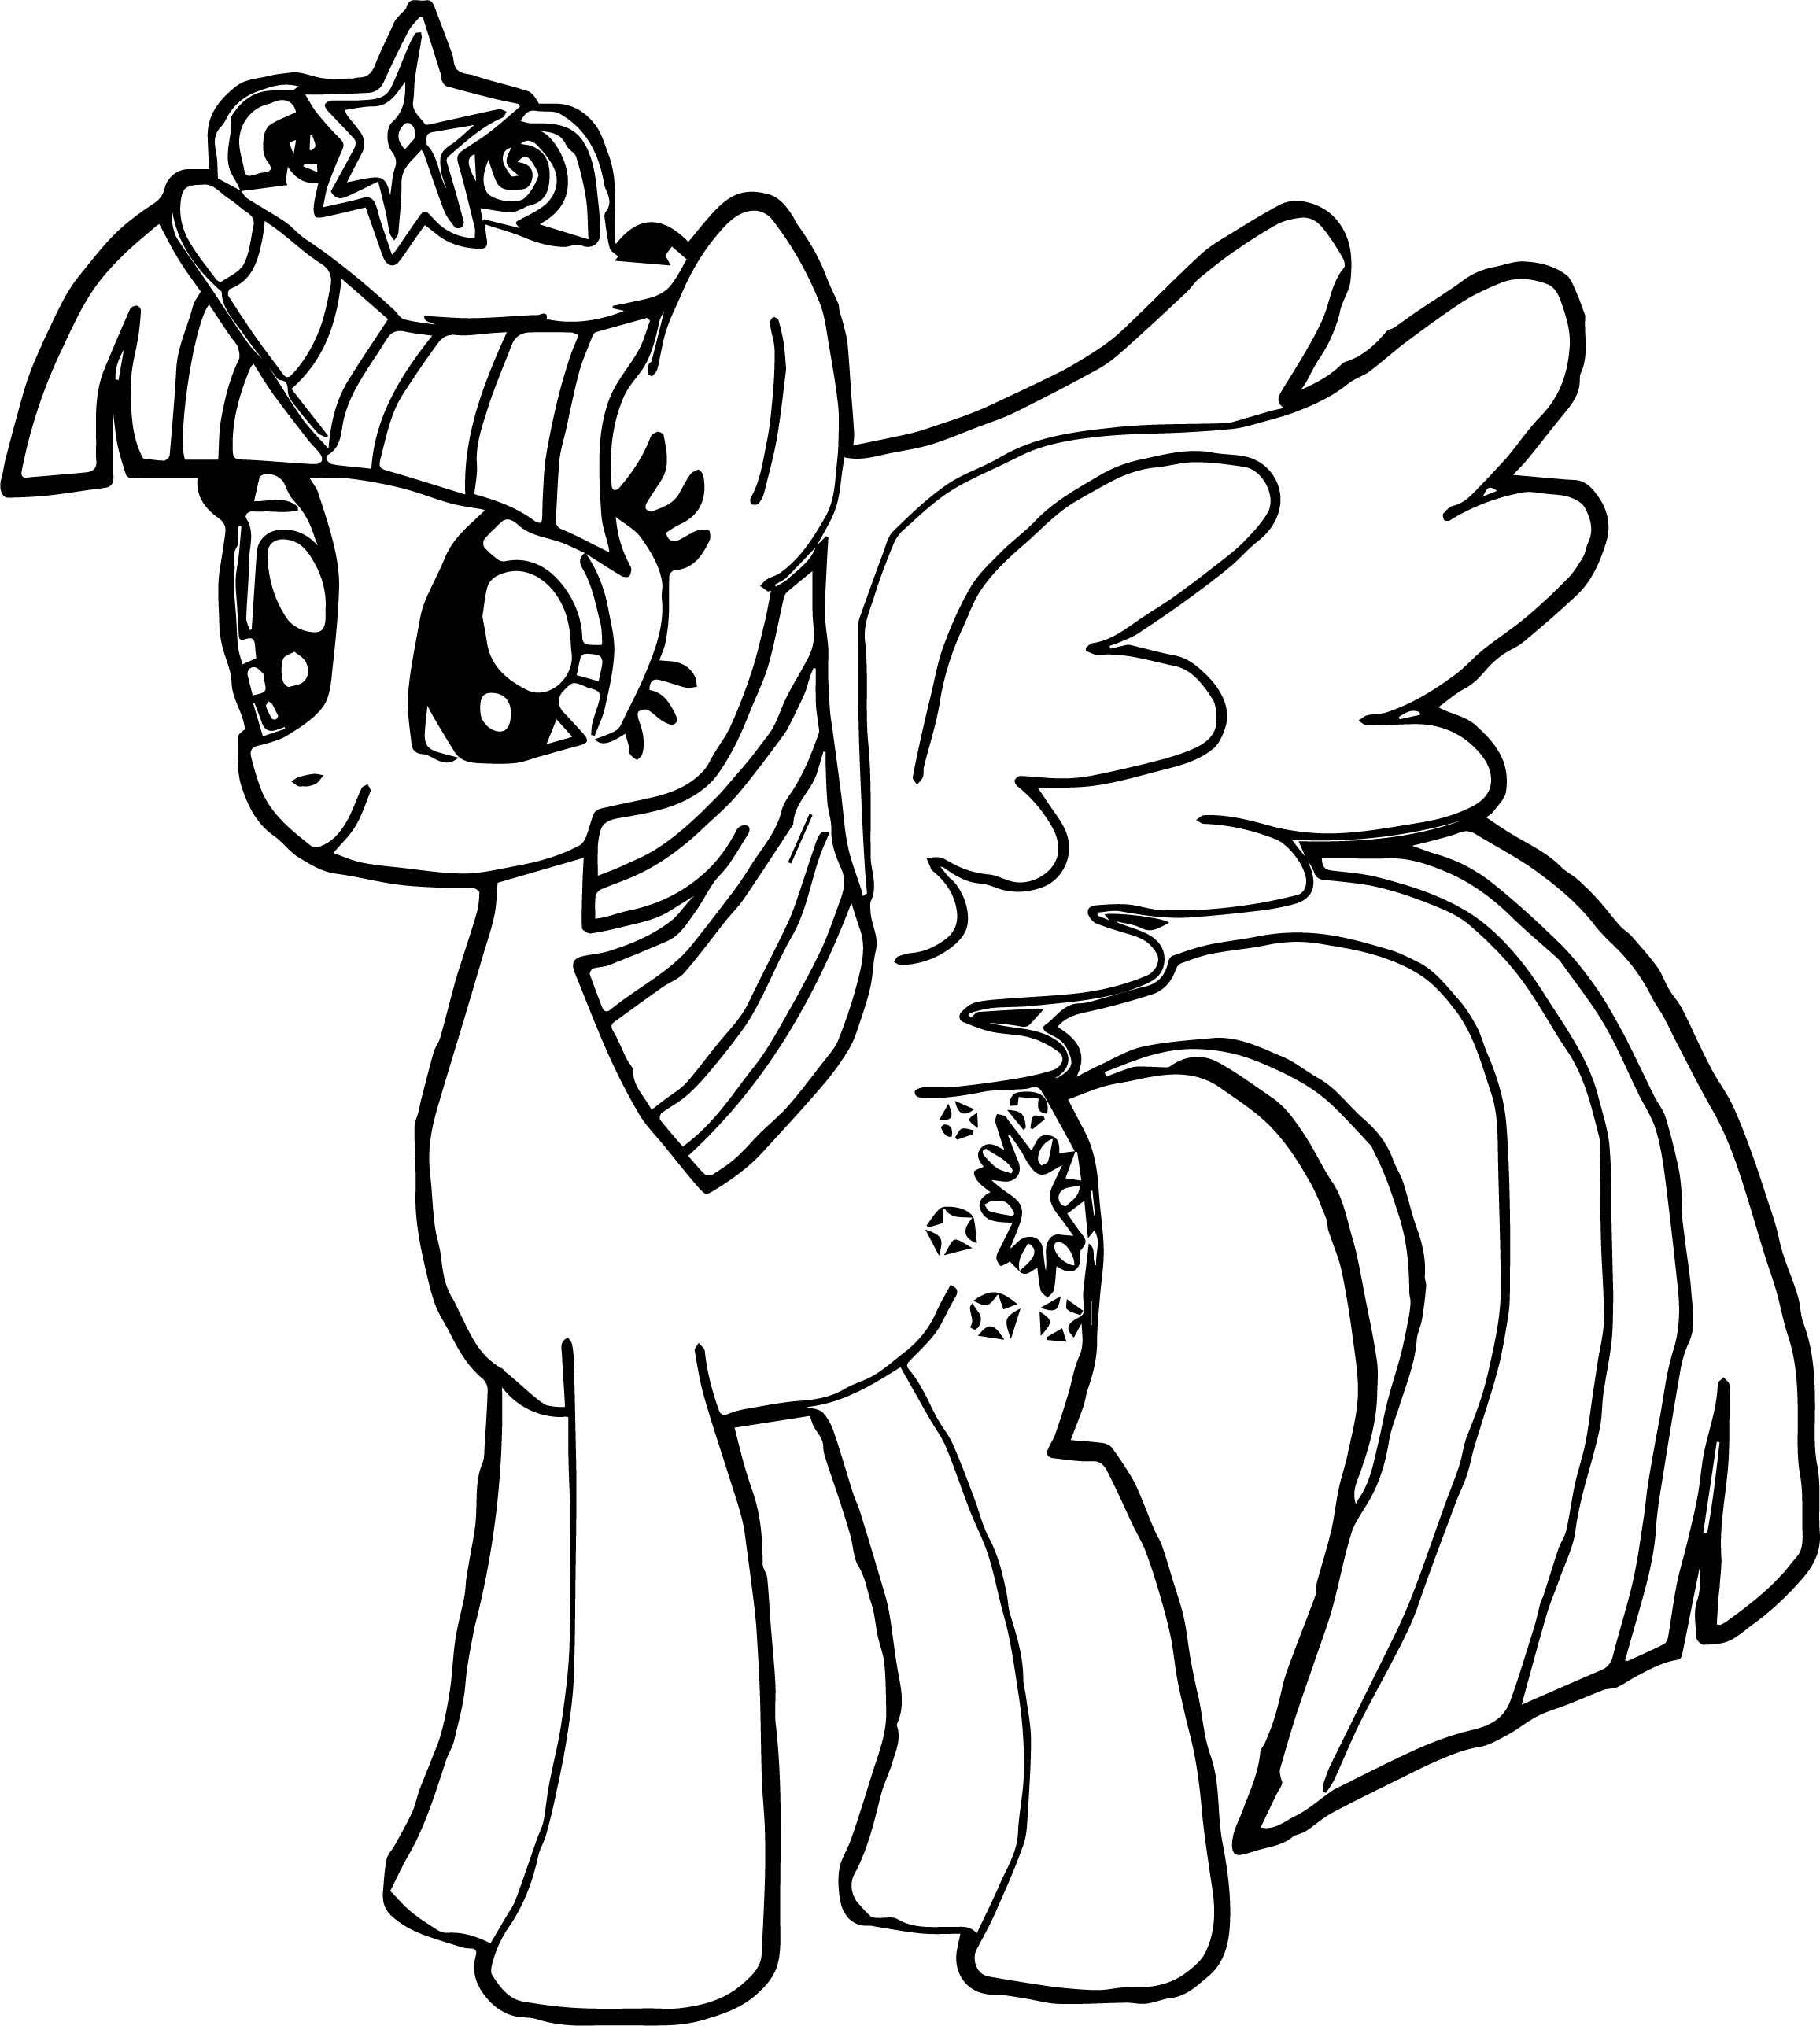 twilight sparkle colouring pages twilight sparkle coloring pages best coloring pages for kids pages colouring twilight sparkle